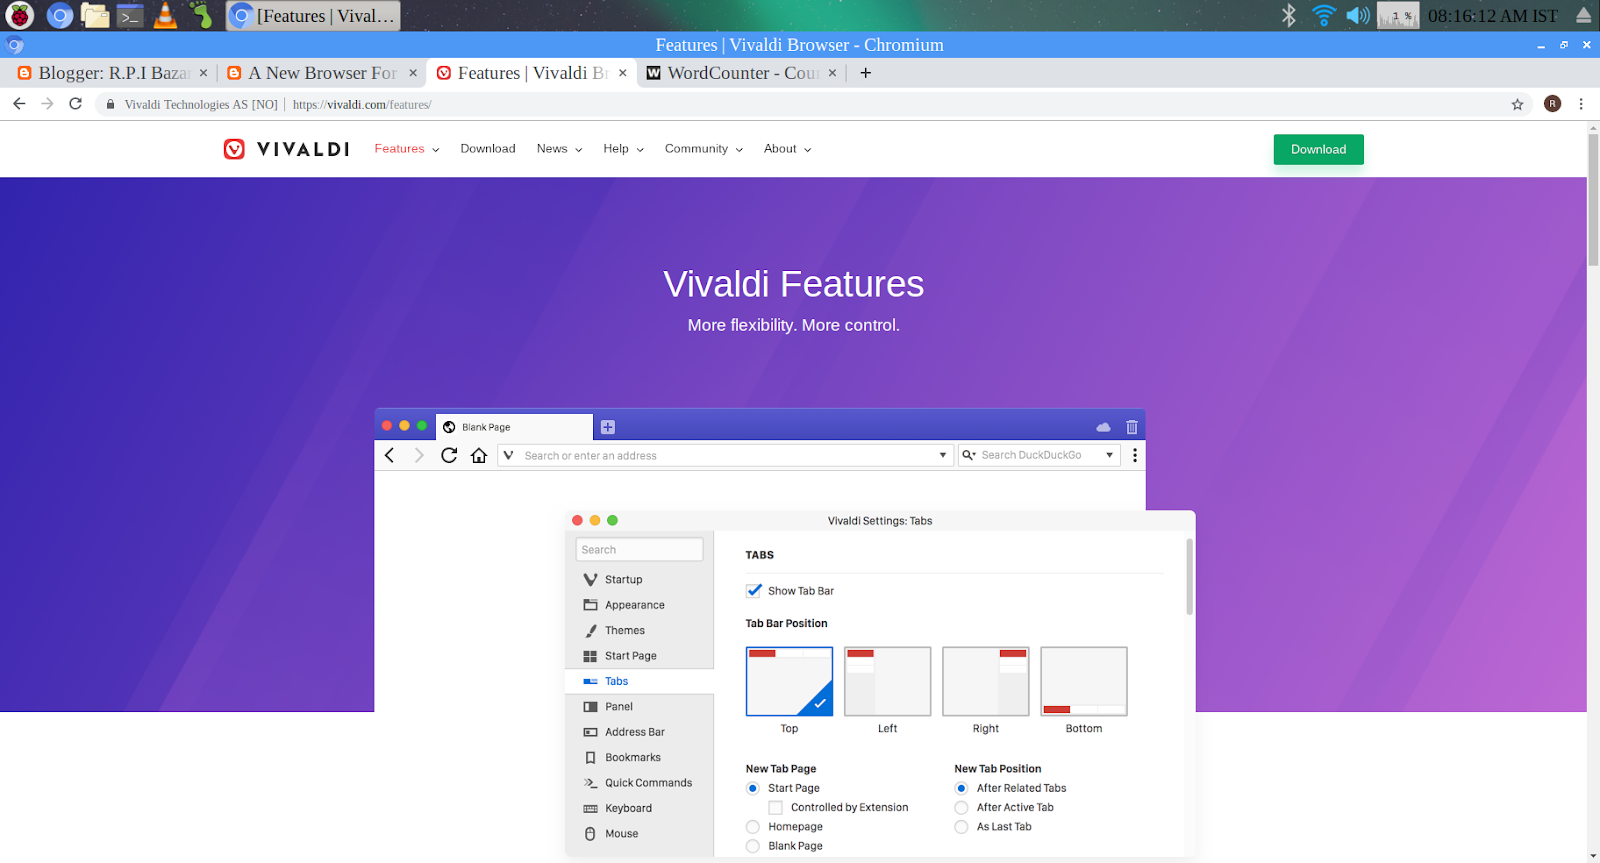 A New Browser For Raspbarry pi is out Today,Vivaldi - R P I Bazar